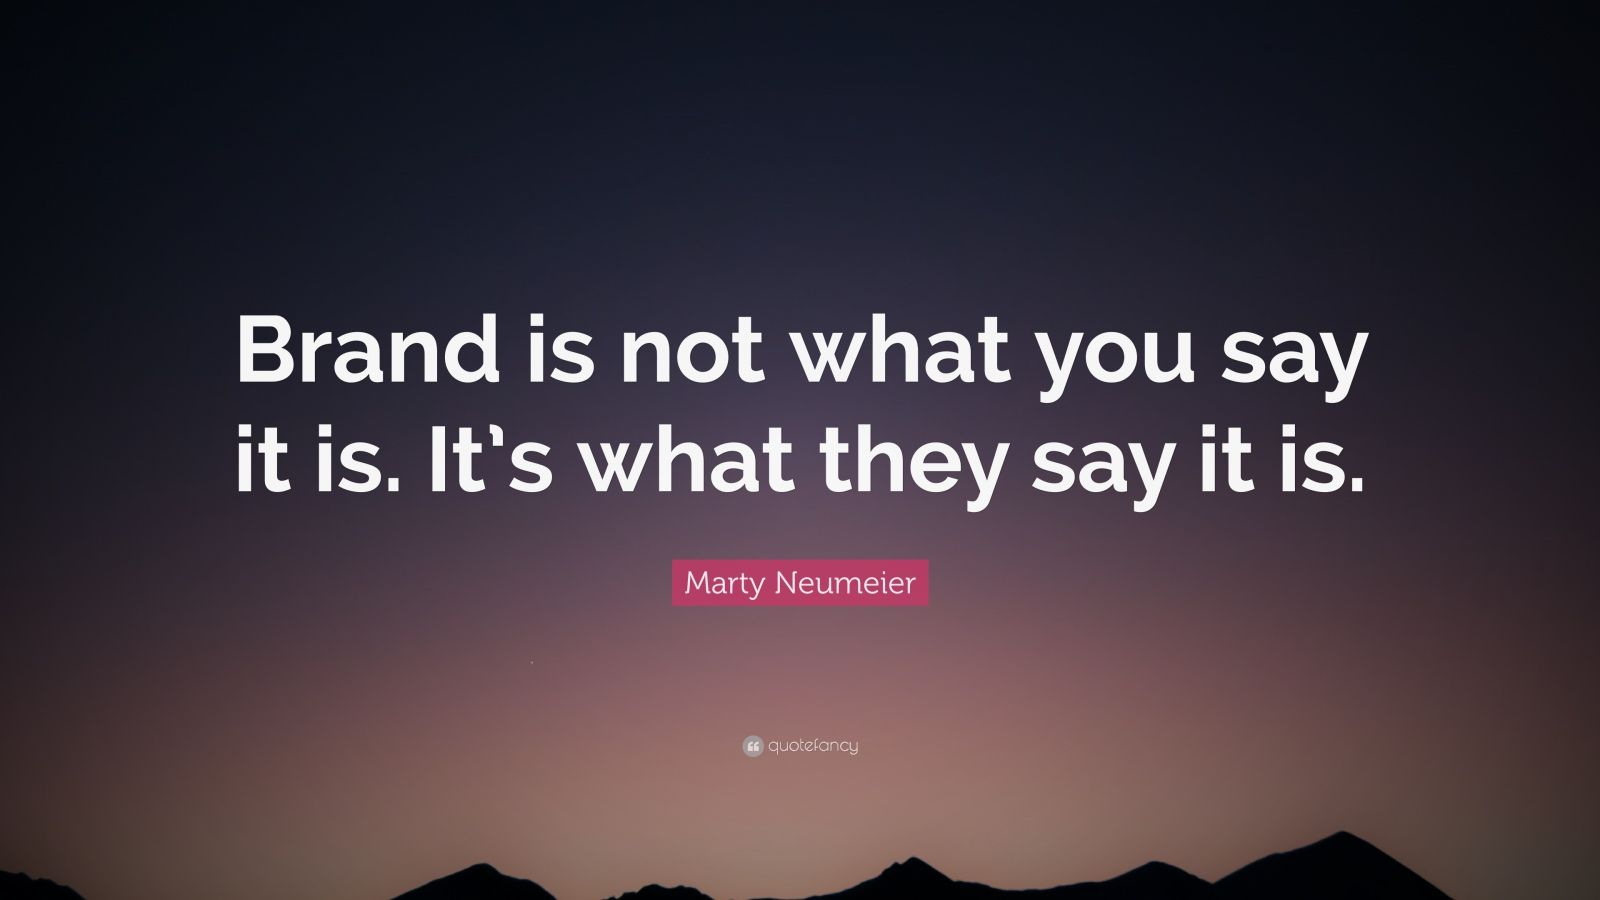 Marty Neumeier Quotes (10 Wallpapers)